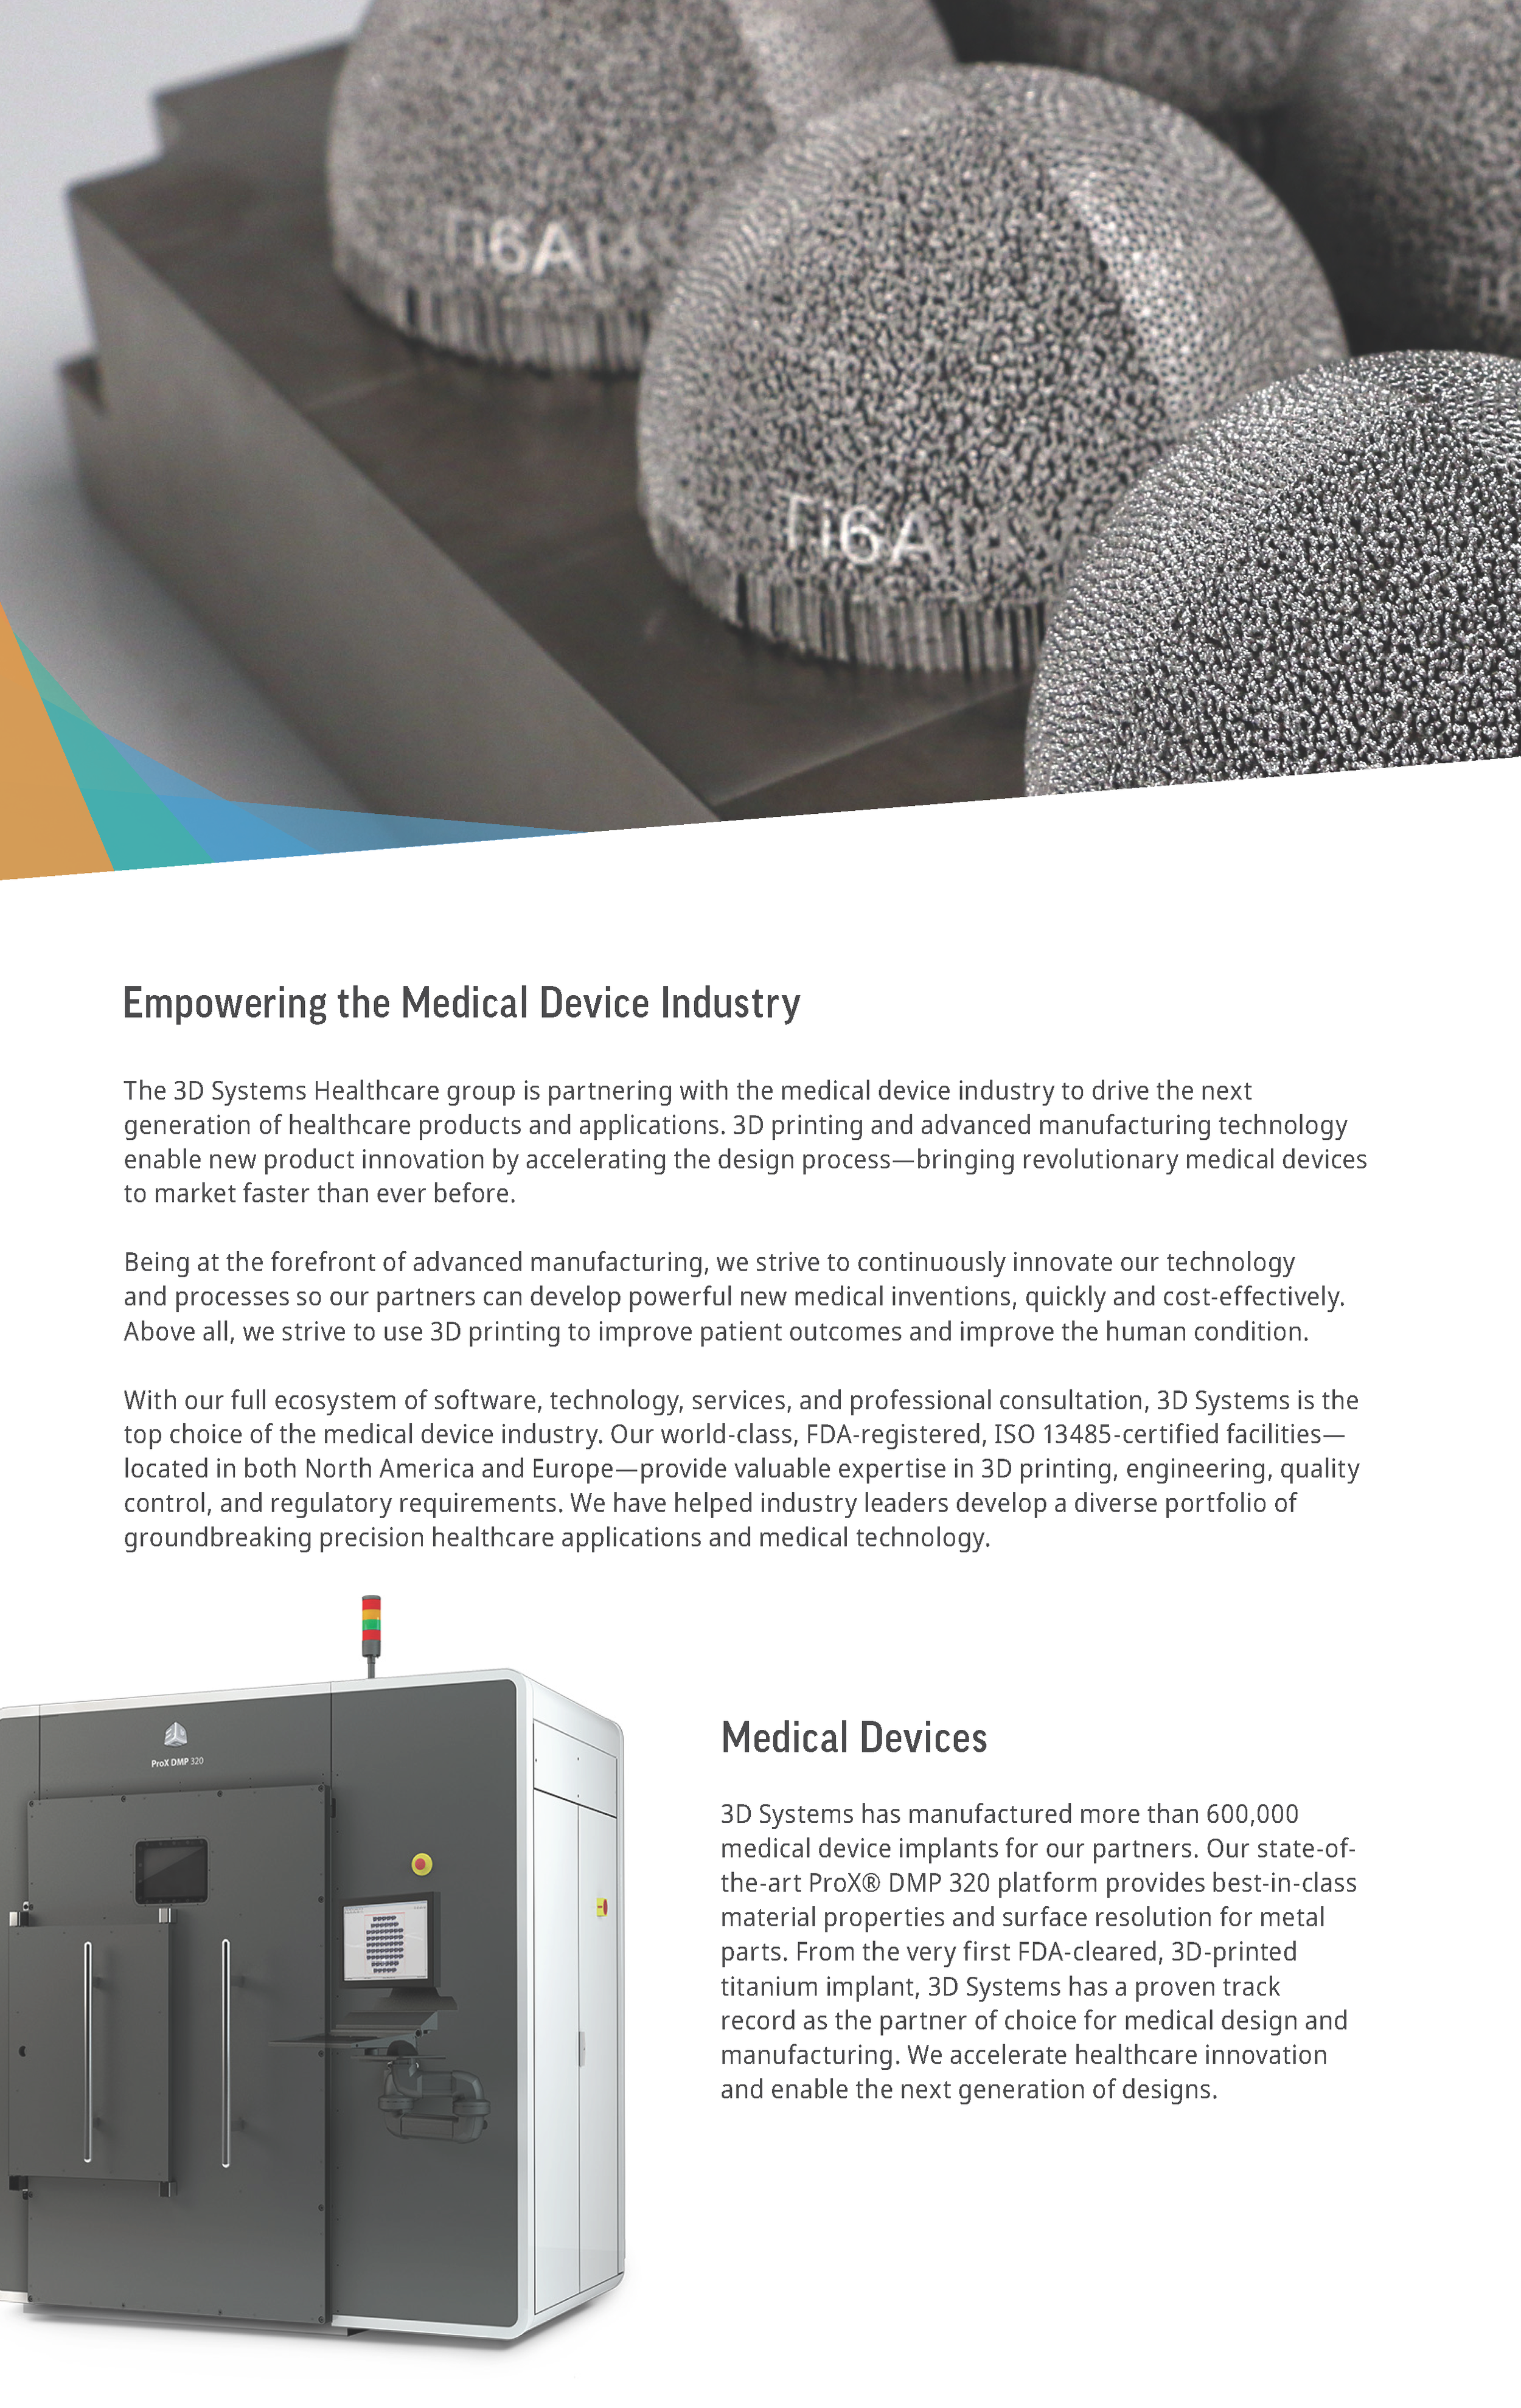 MM-504 Rev A_Medical Device Design & Manufacturing Brochure_101817_Print_Page_2.png